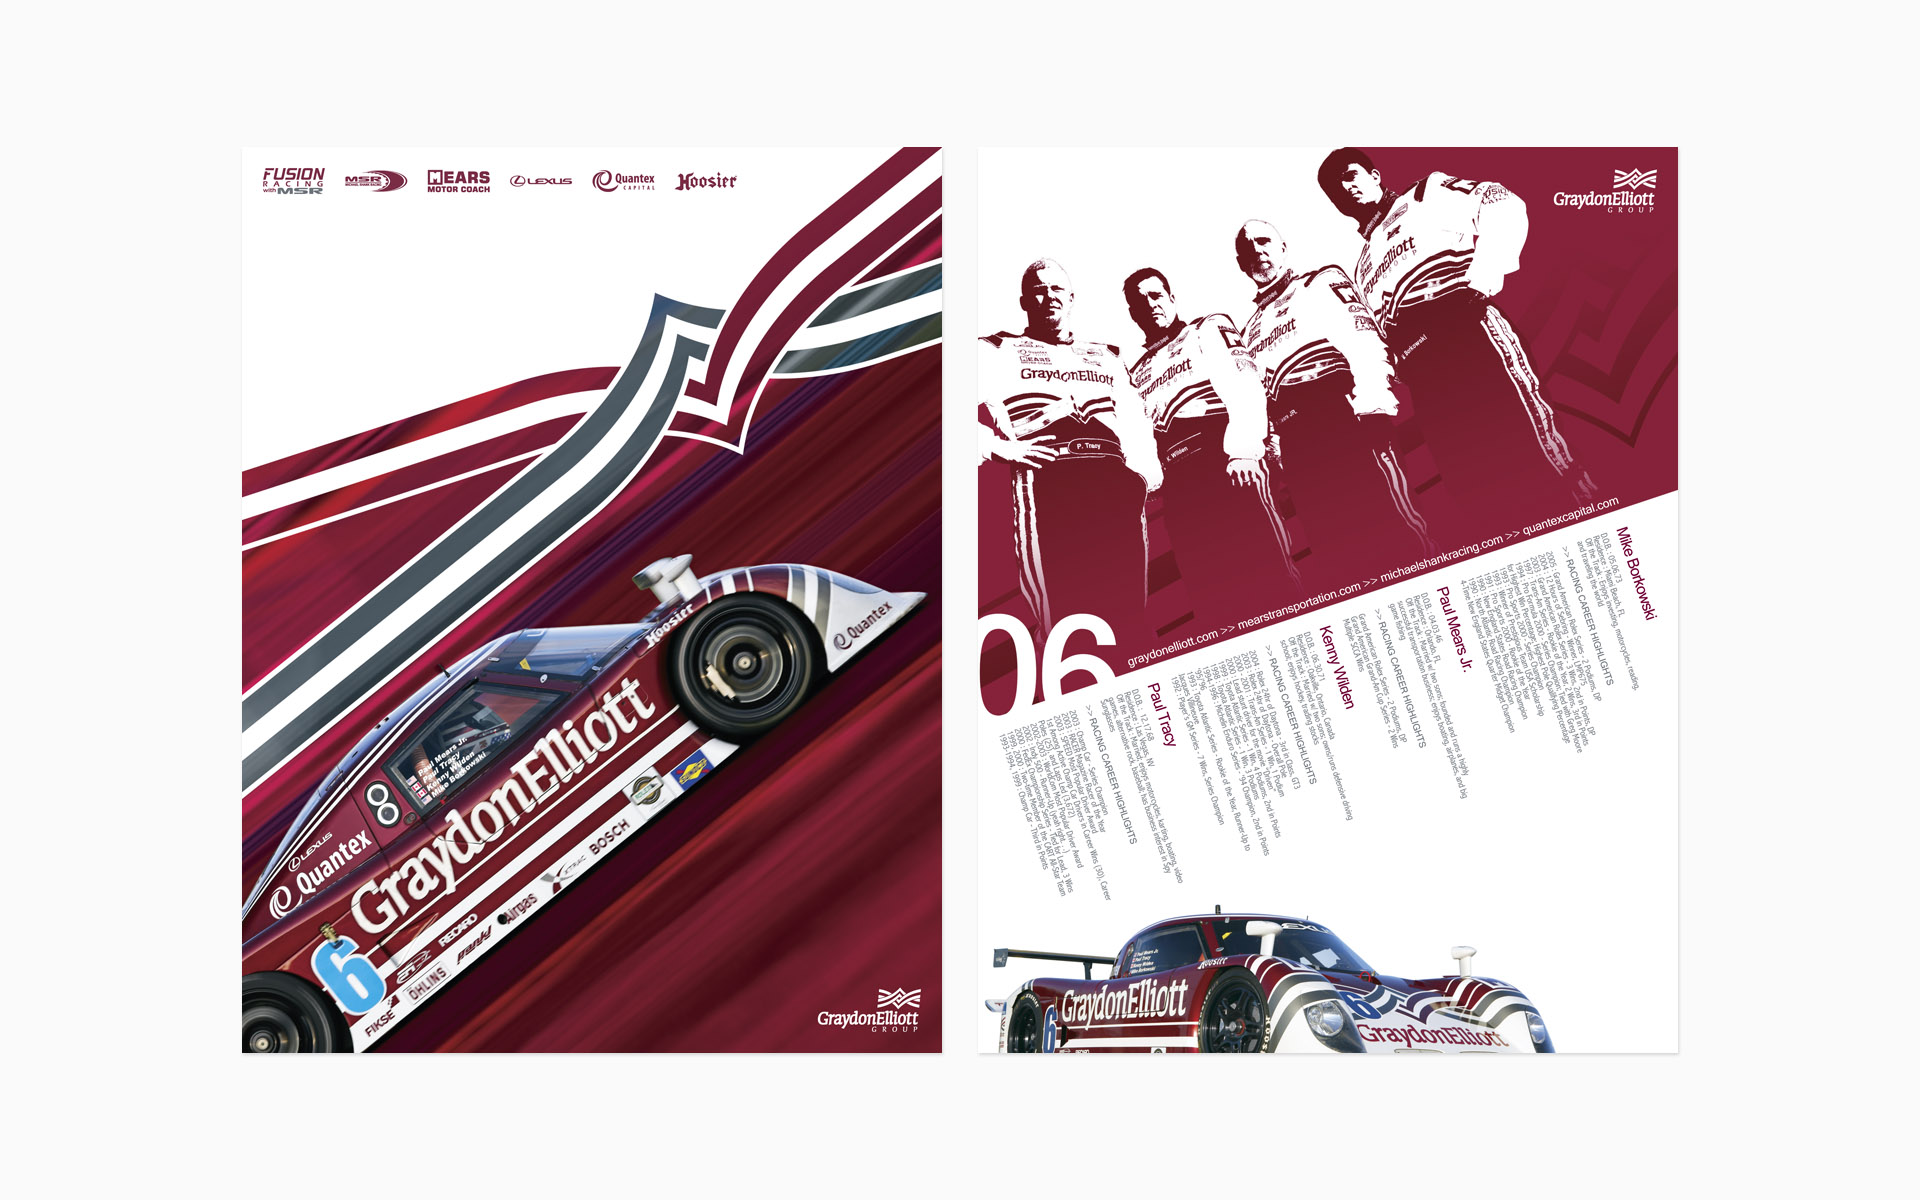 Michael Shank Racing Graydon Elliott Hero Card